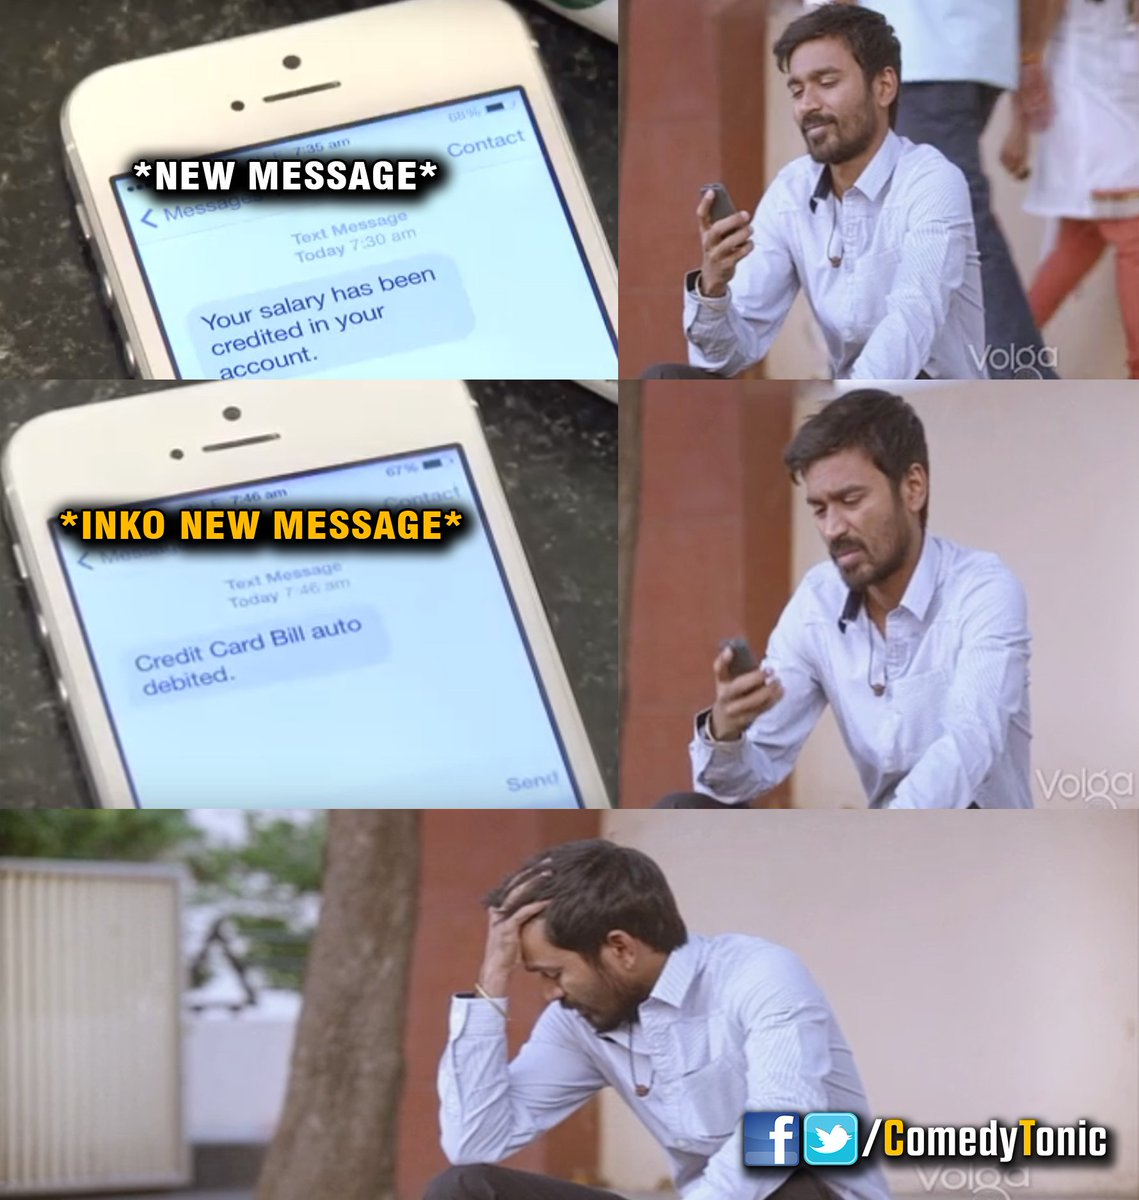 Comedy Tonic Telugu On Twitter Main Ga Choftware Employeech Ki Ee